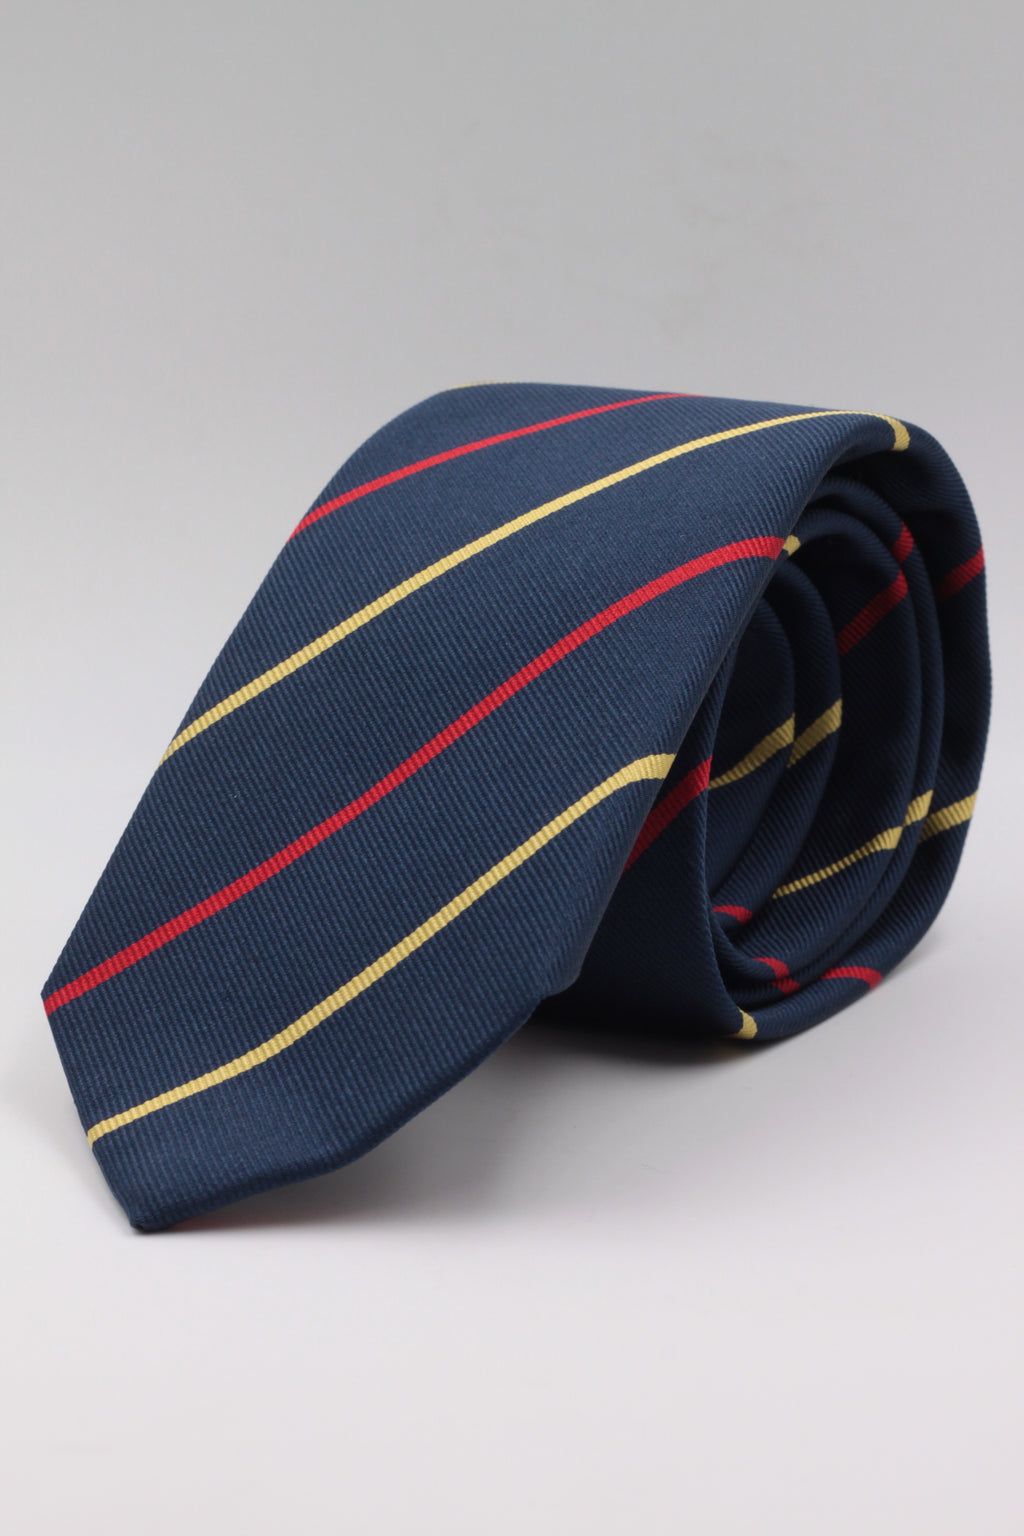 Navy Blue, Yellow and Red stripe tie